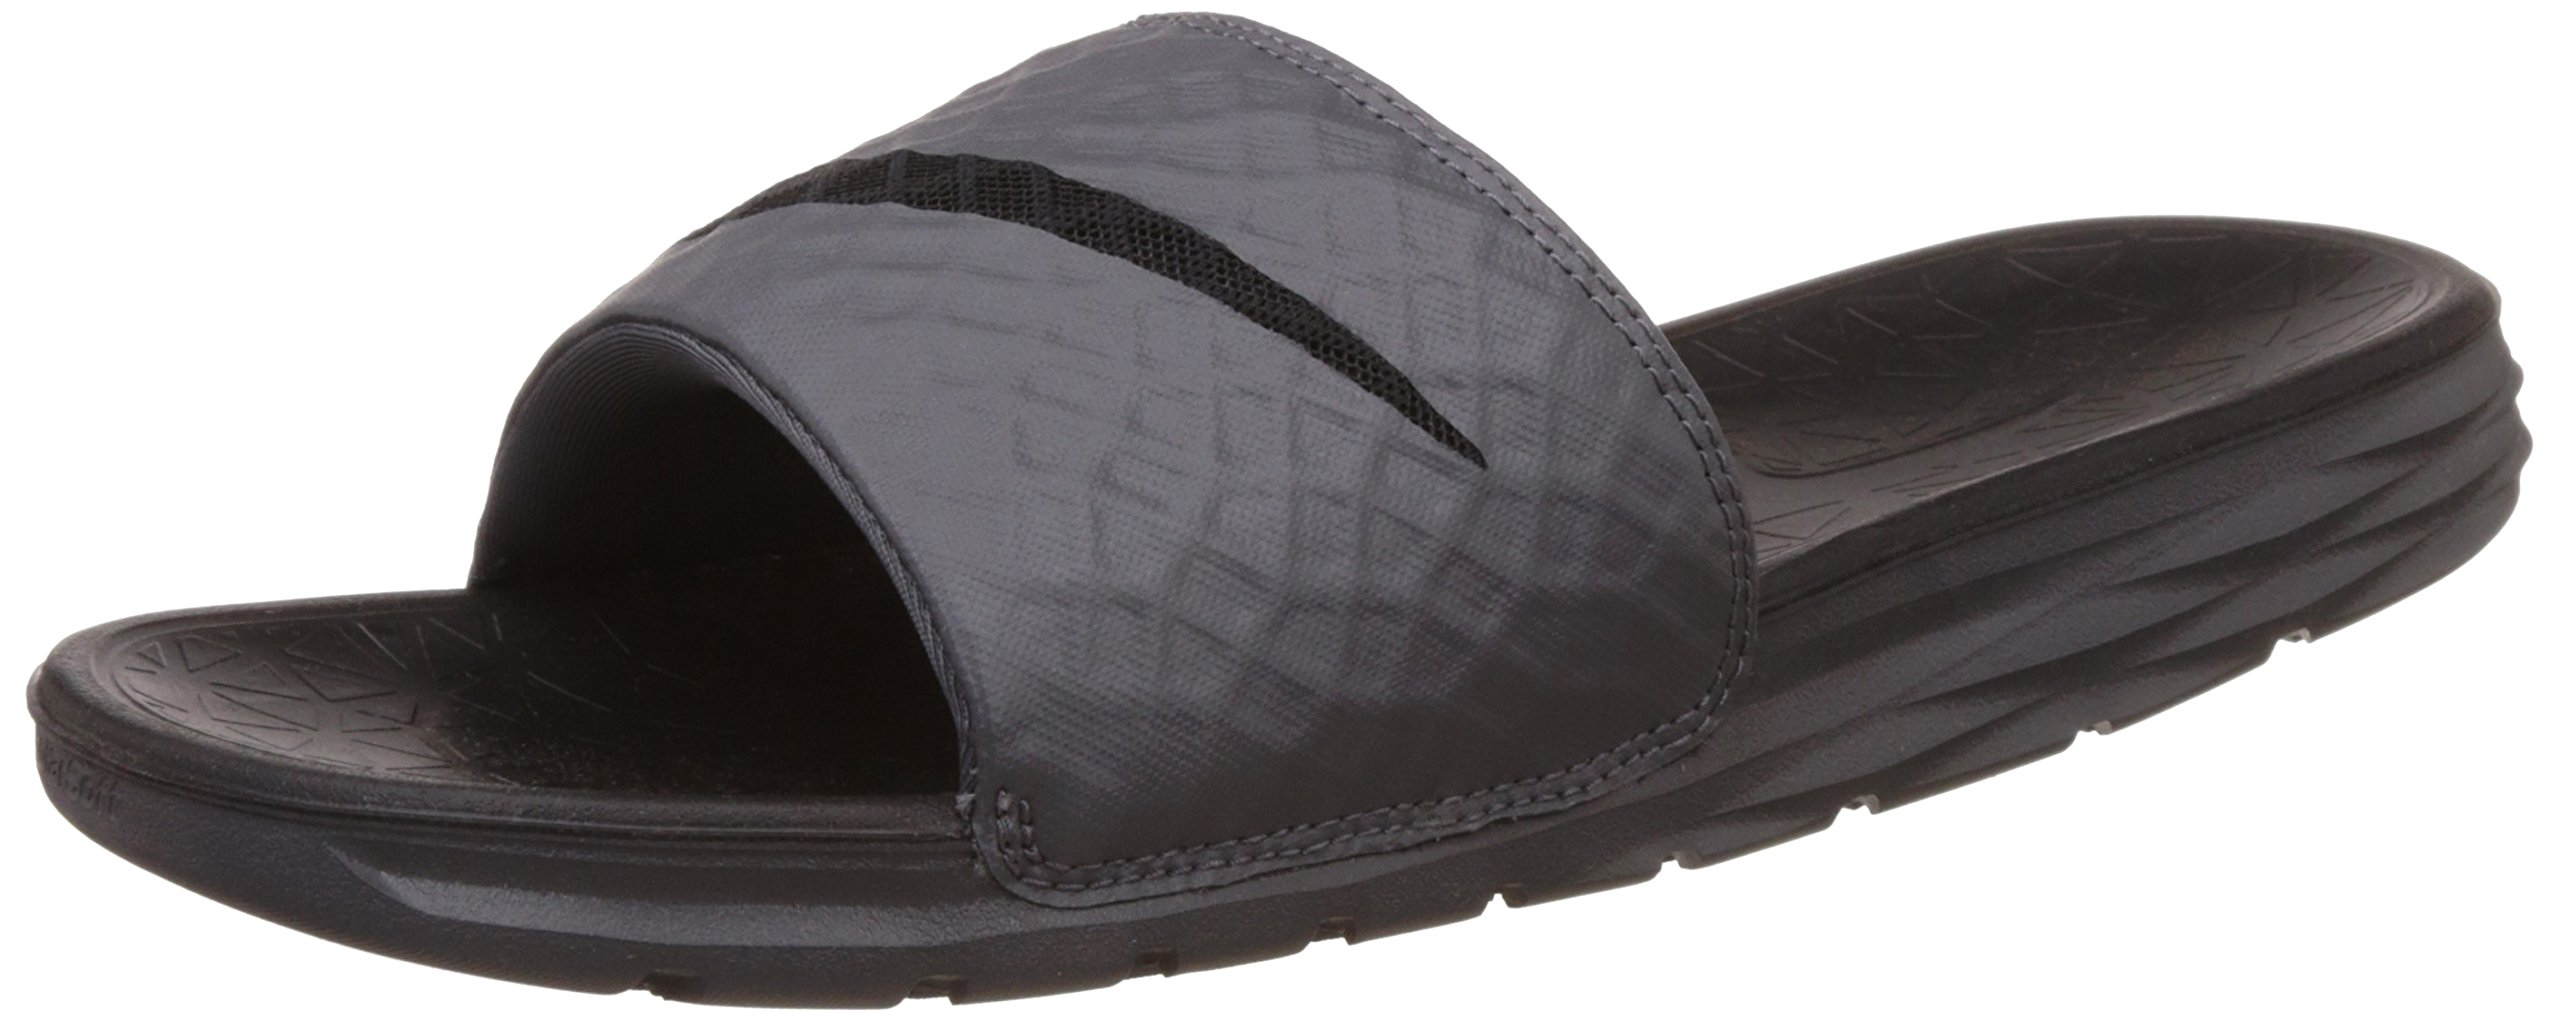 competitive price 0d565 7f4a7 Galleon - NIKE Men s Benassi Solarsoft Slide Sandal, Dark Grey Black, 13  D(M) US